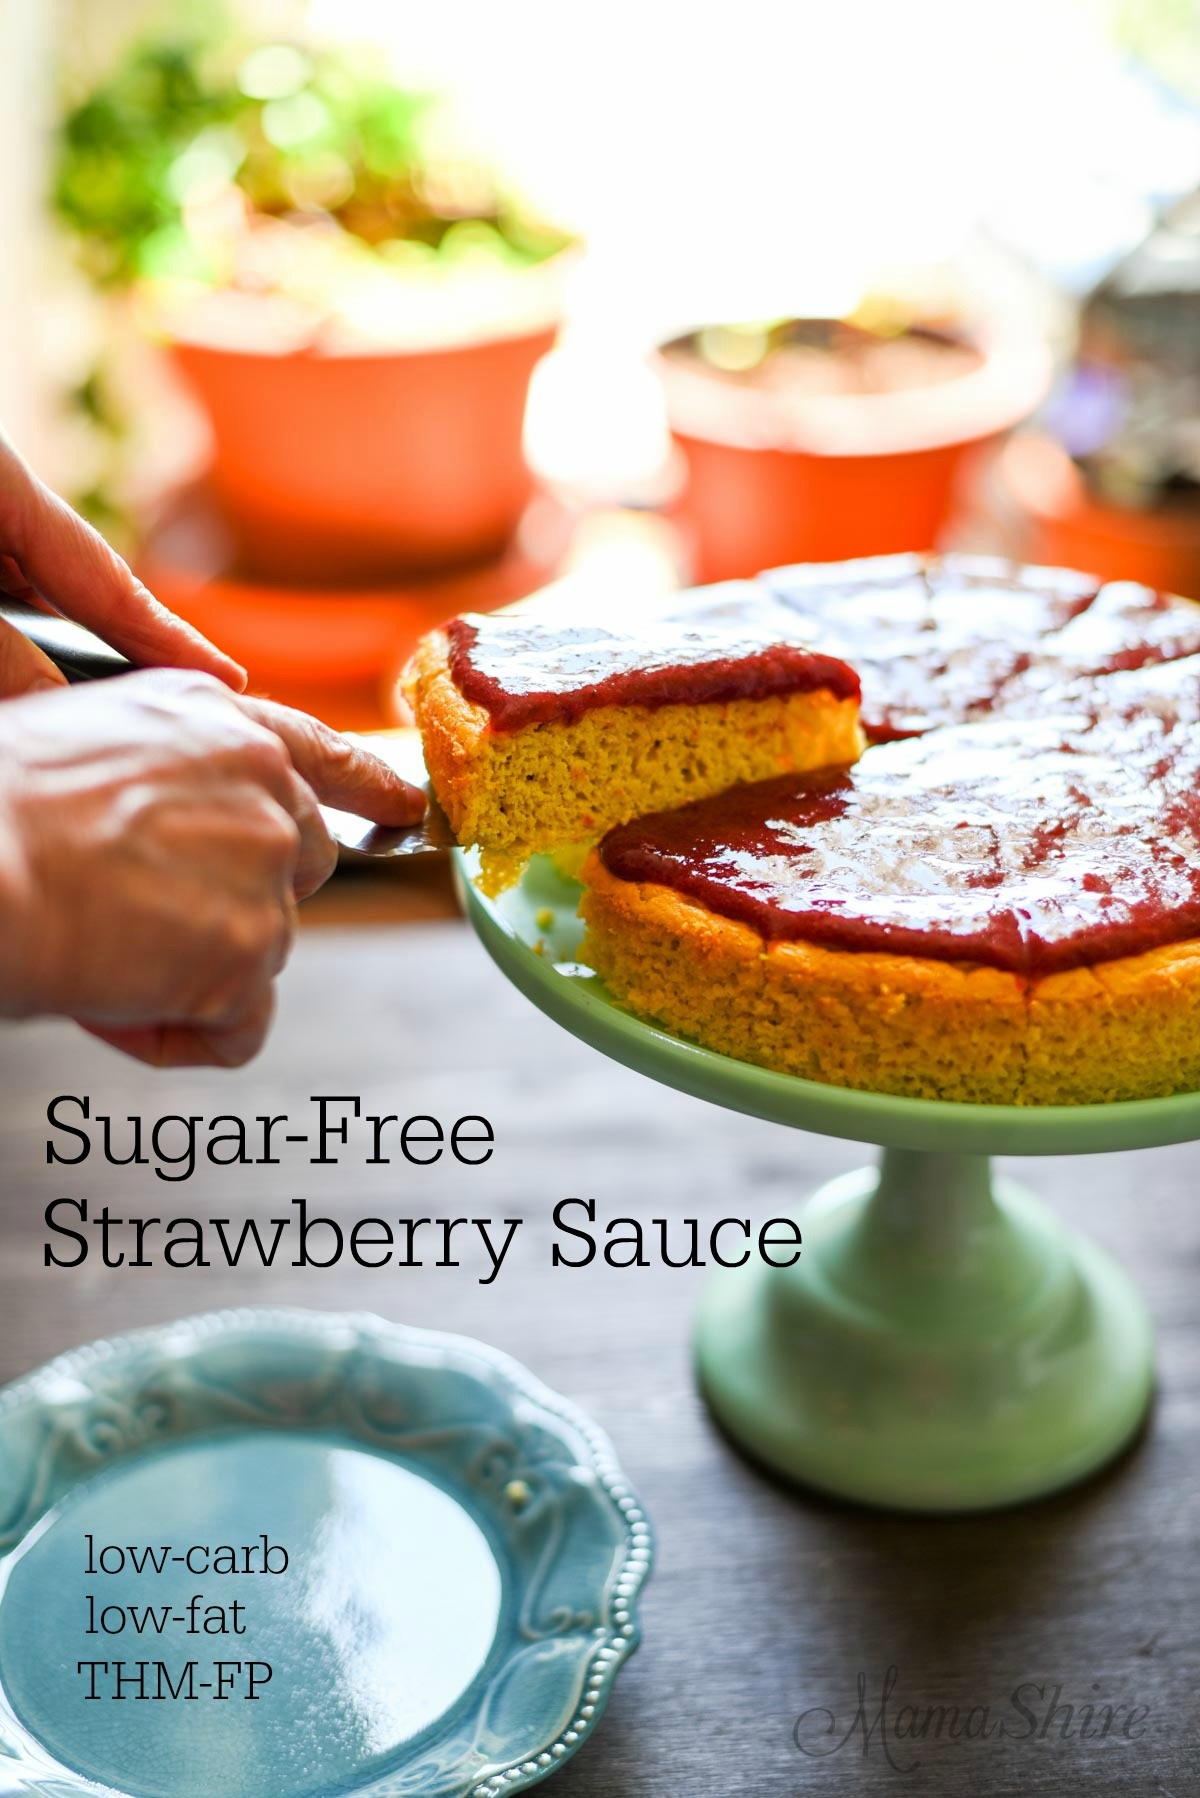 Sugar-free Strawberry Sauce - low-carb, THM-FP, gluten-free